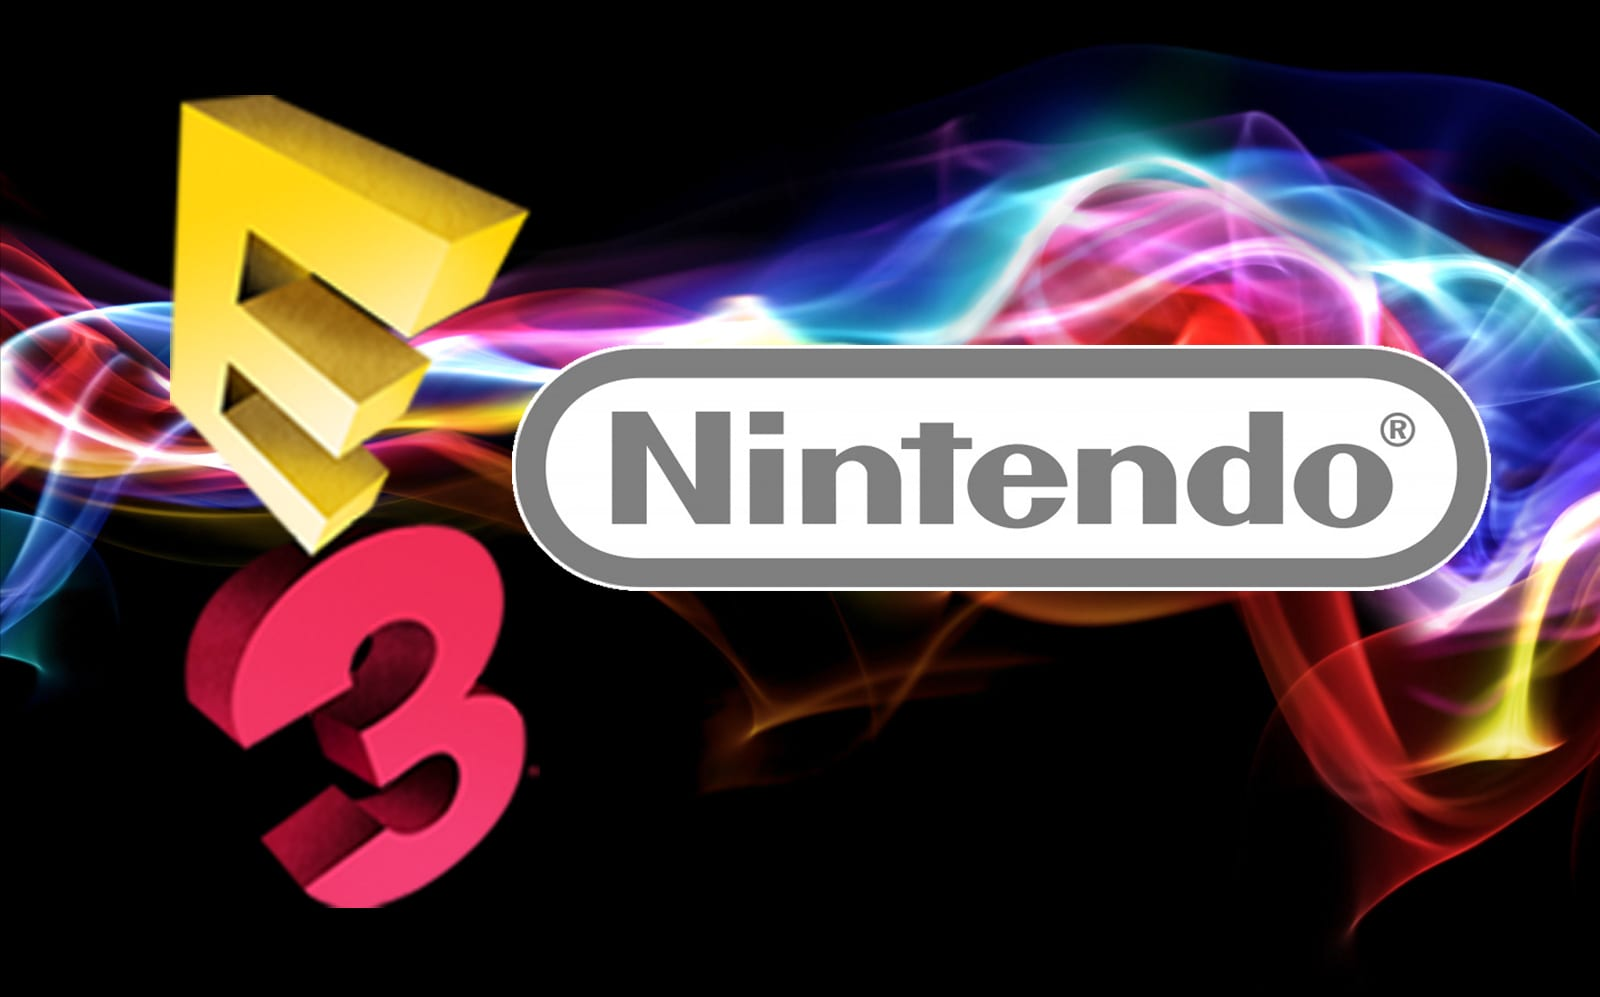 Nintendo will not be having a traditional conference at E3 2013